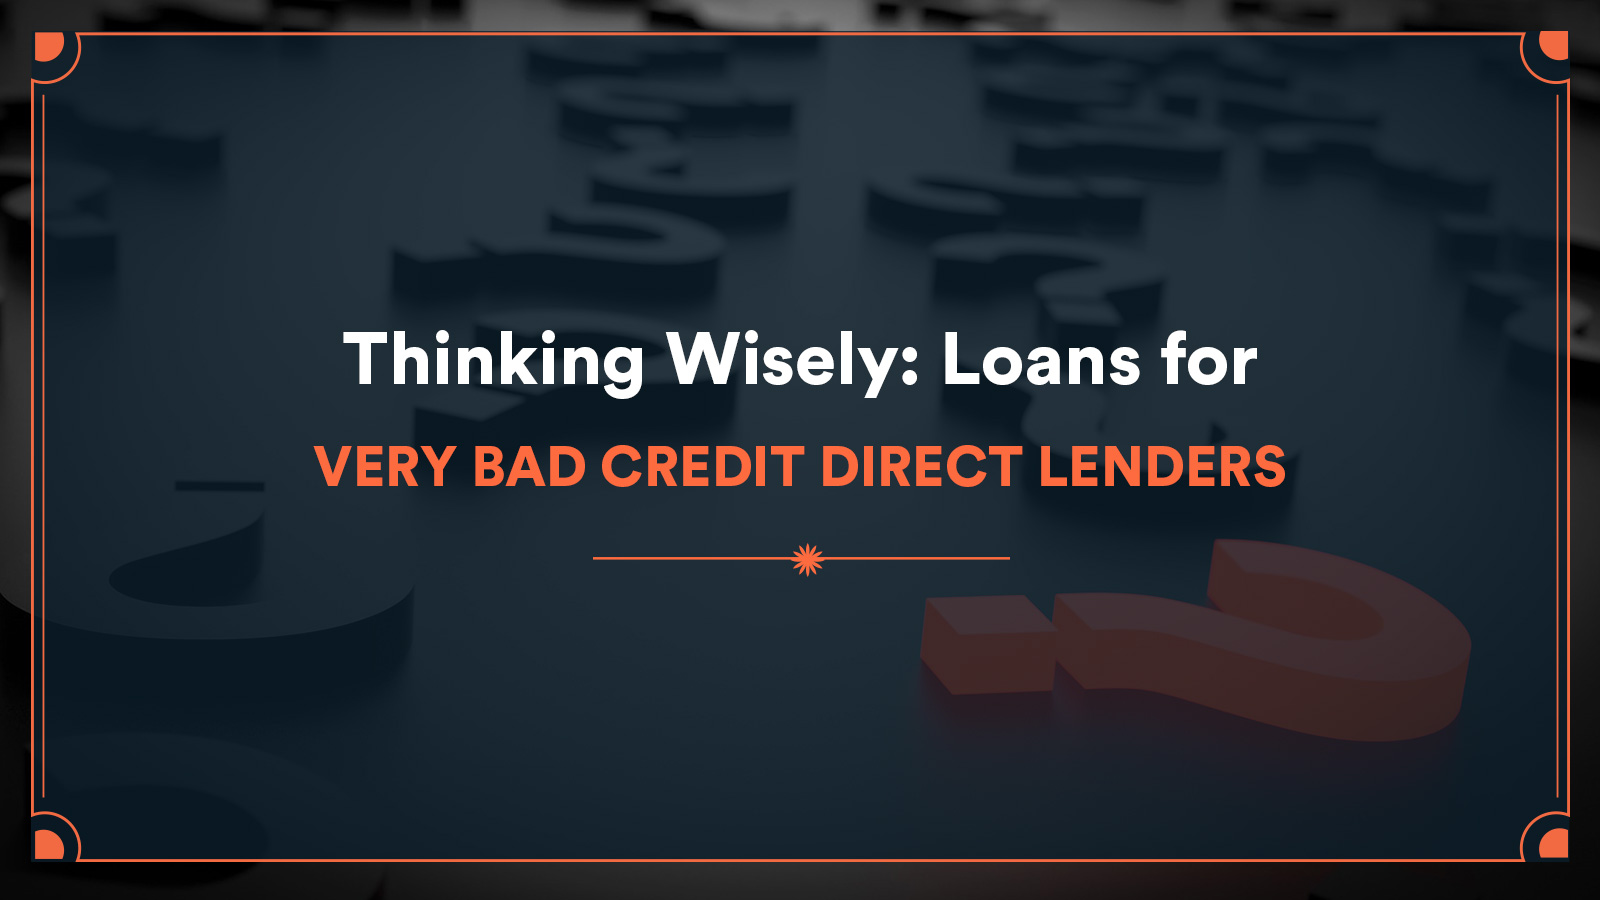 loans for very bad credit direct lenders